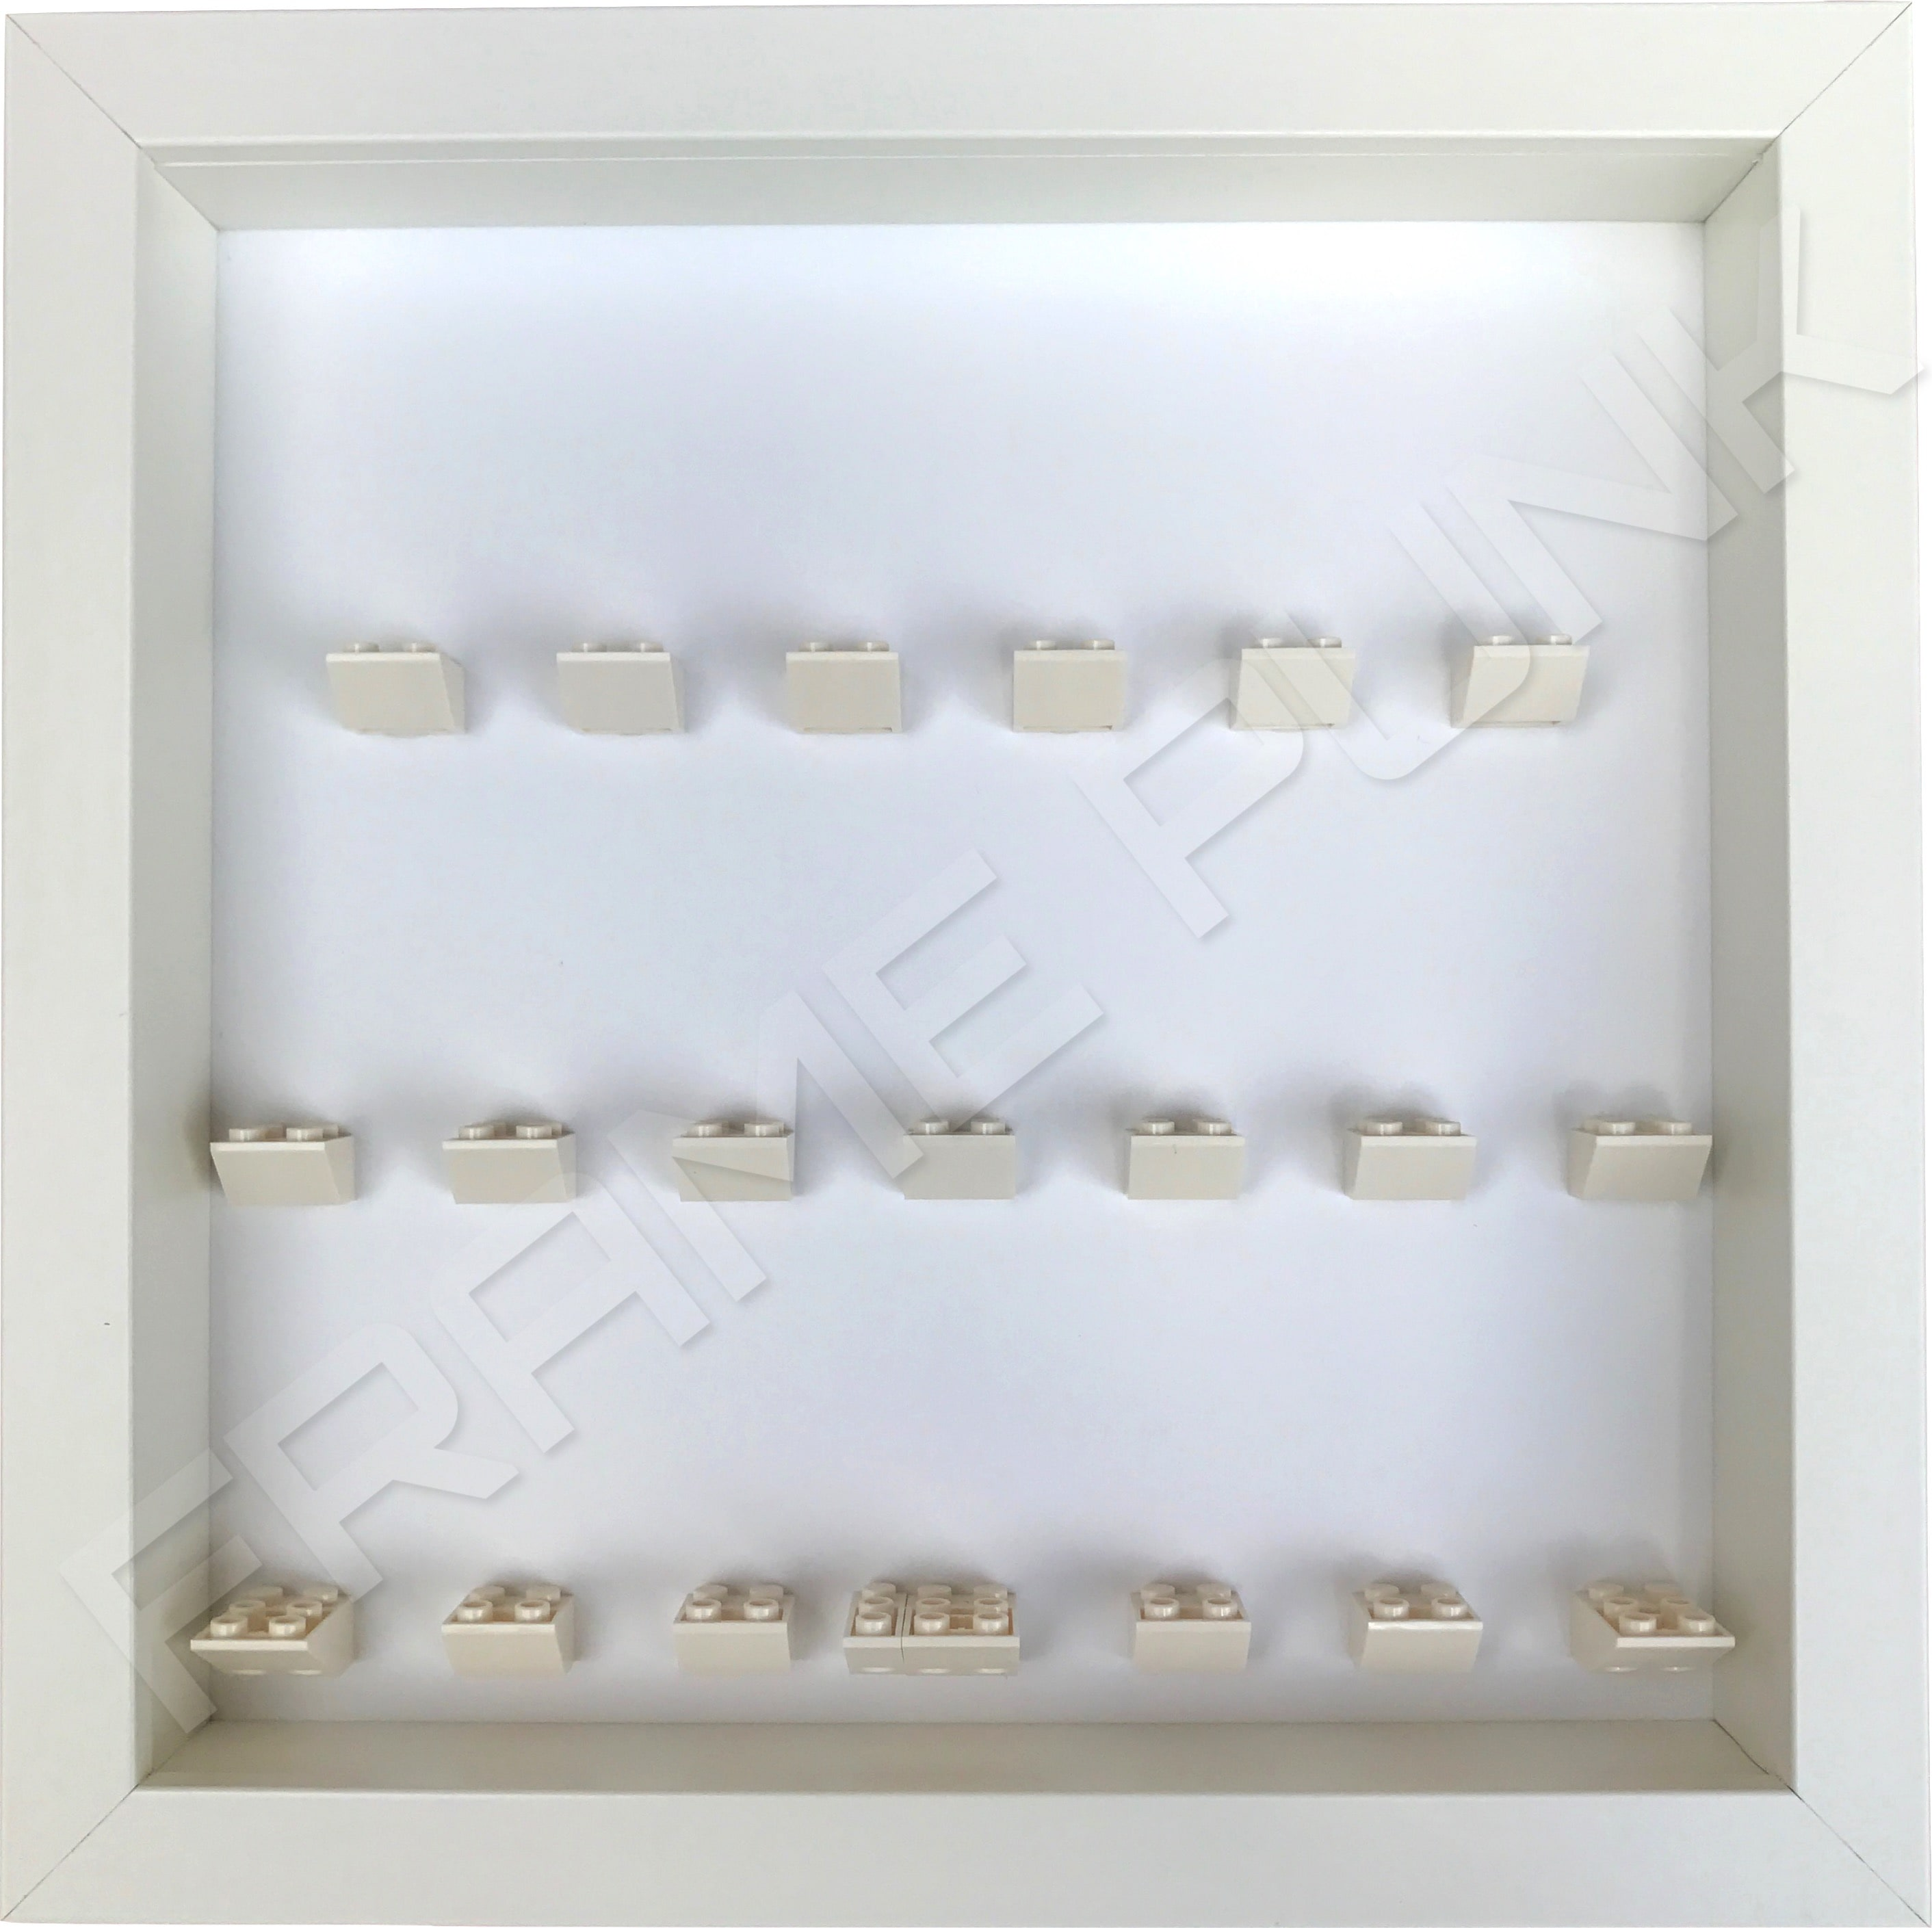 LEGO Ninjago Movie Minifigures Series display frame (All White)